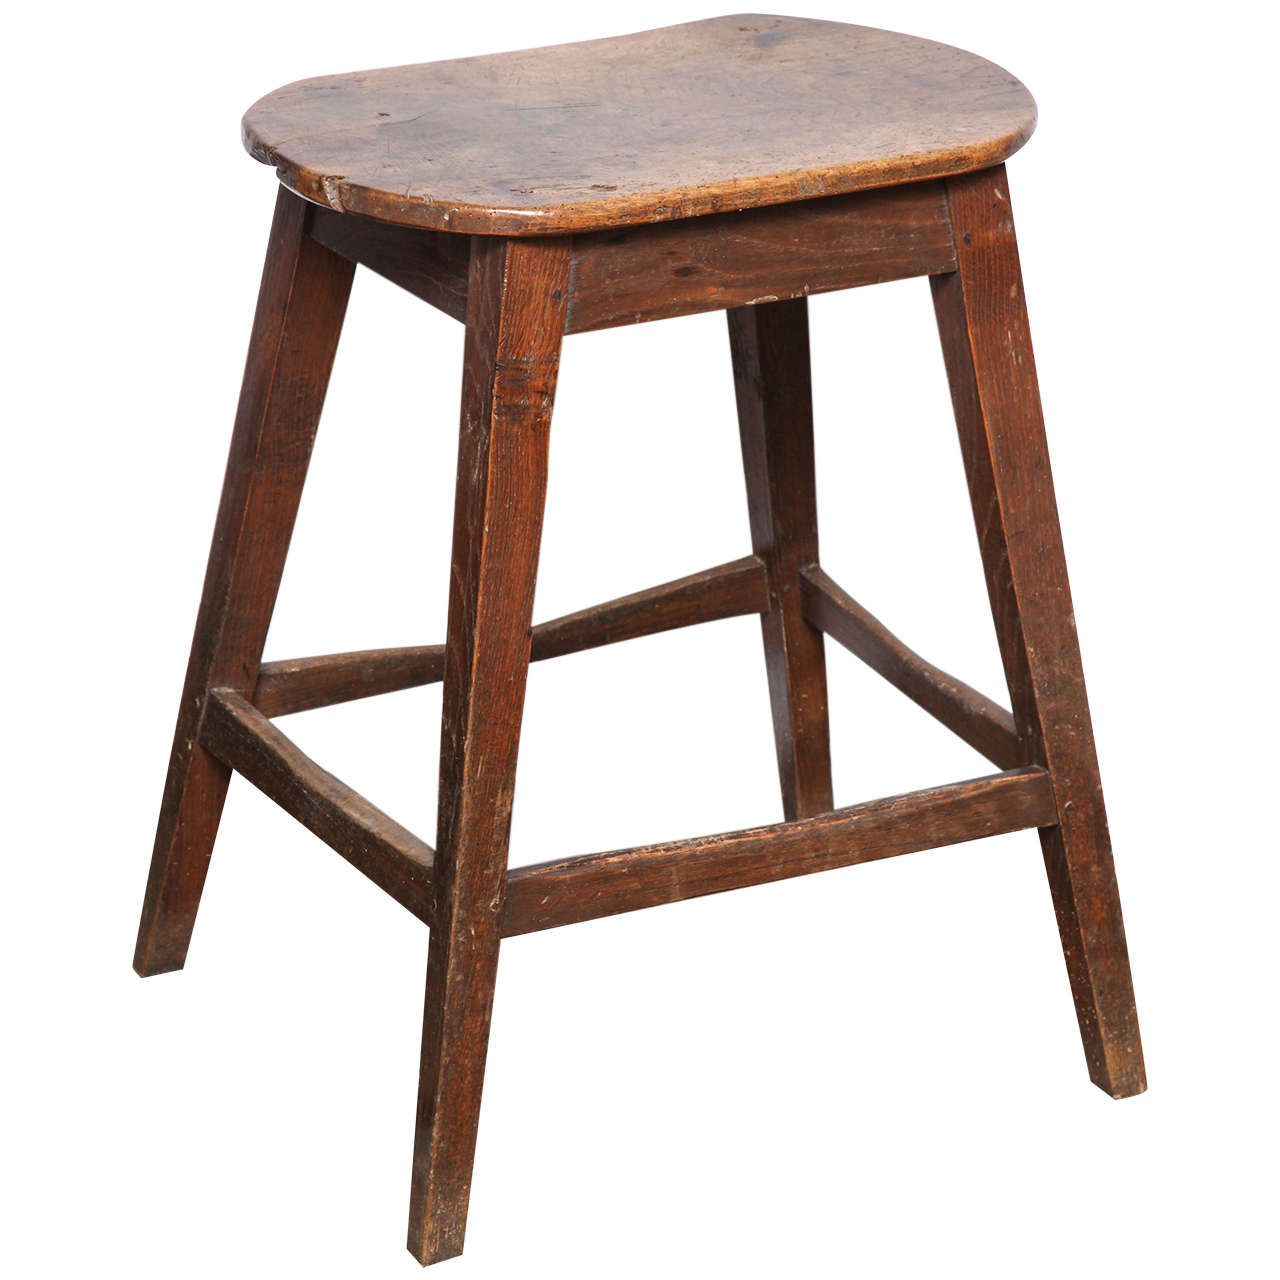 Kitchen Stools For Sale Unusually Large Oval Kitchen Stool